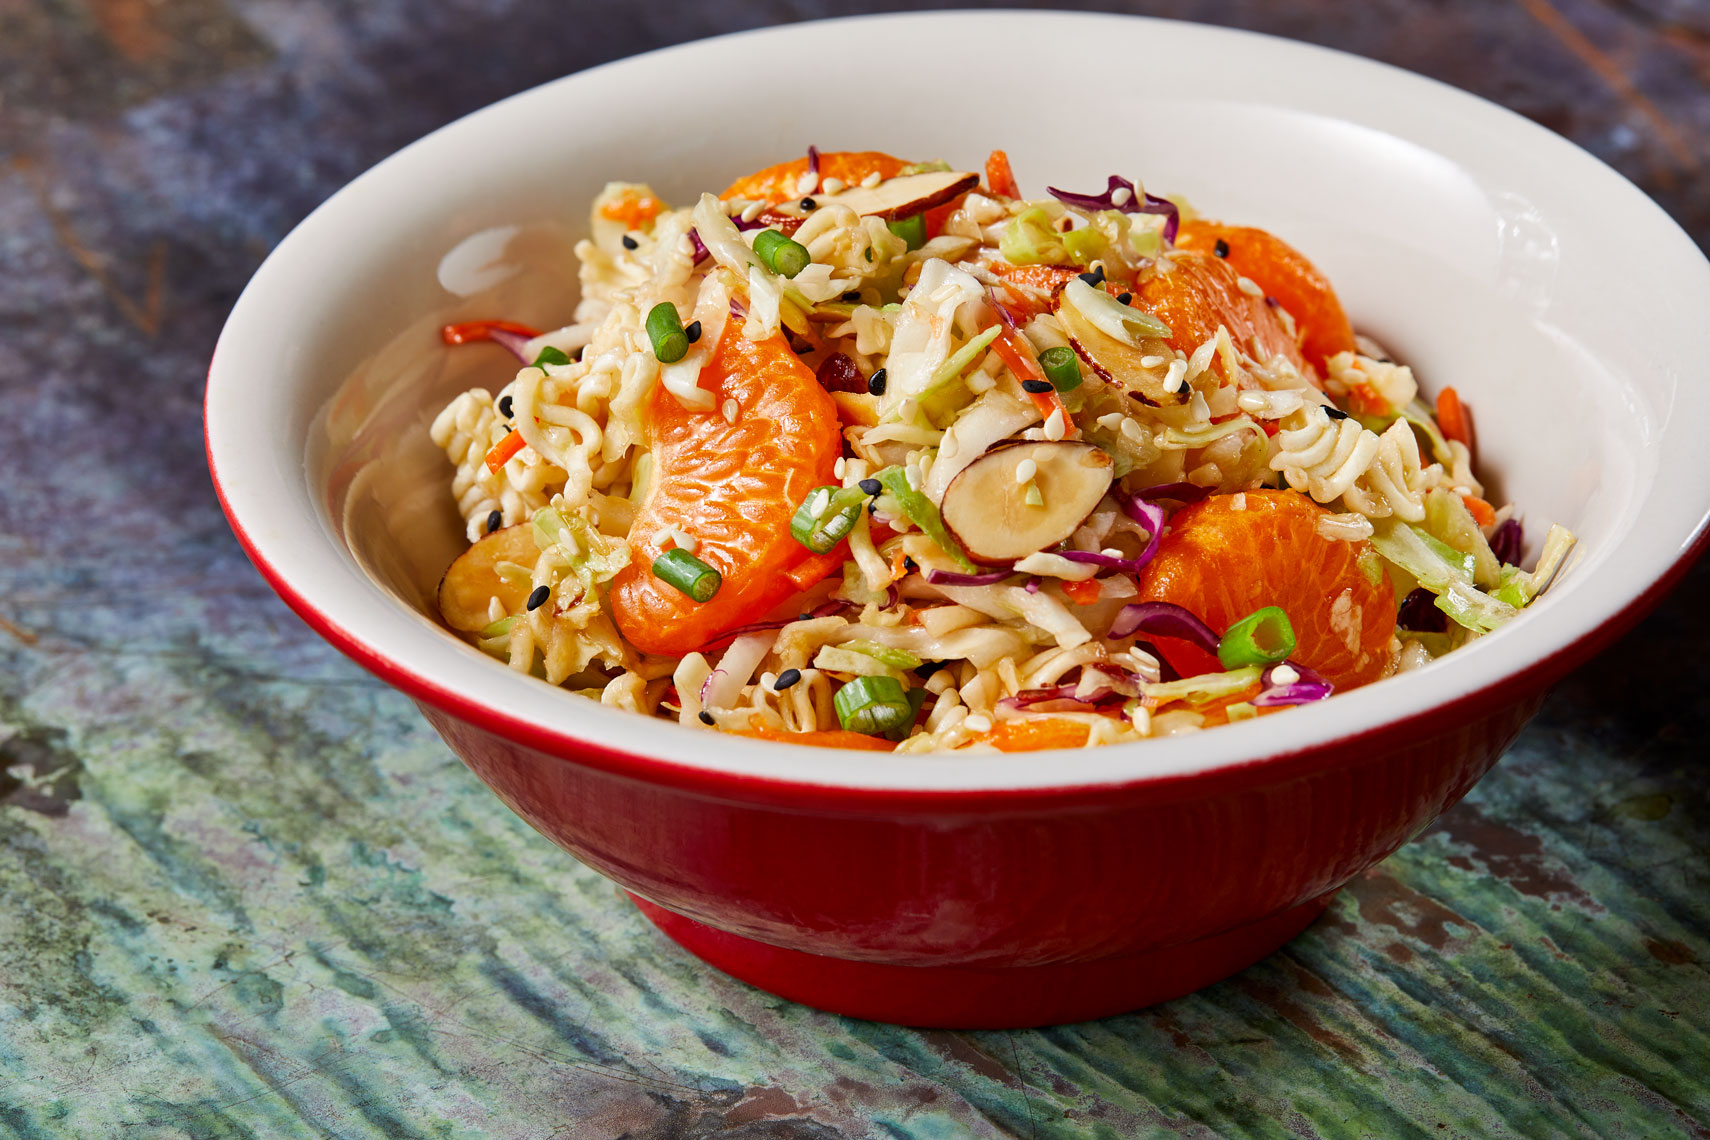 Mandarin_Orange_Ramen_Noodle_Salad__13_222